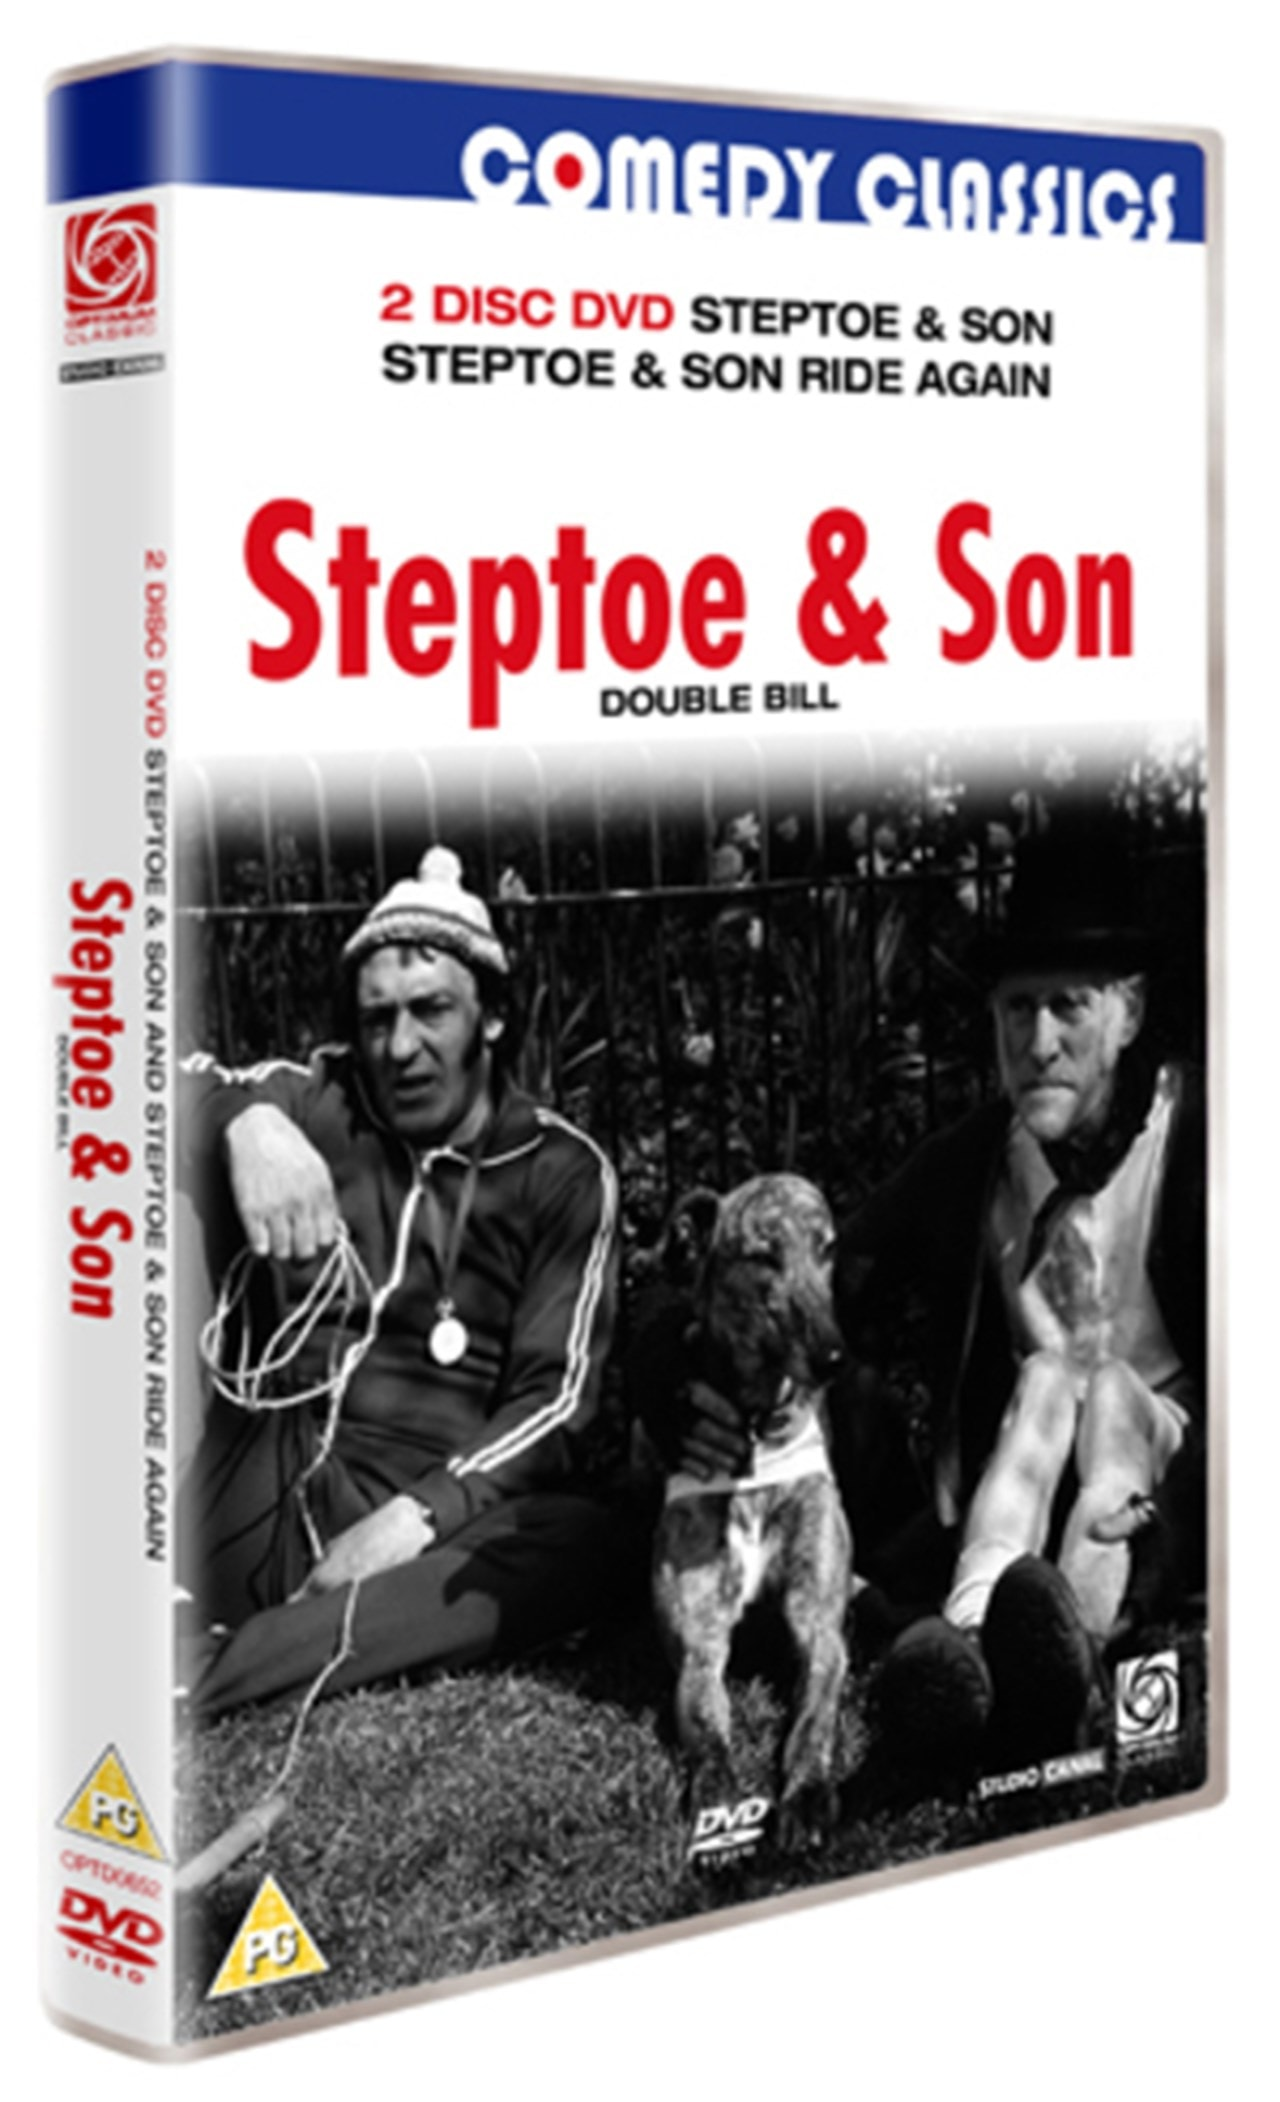 Steptoe and Son/Steptoe and Son Ride Again - 1